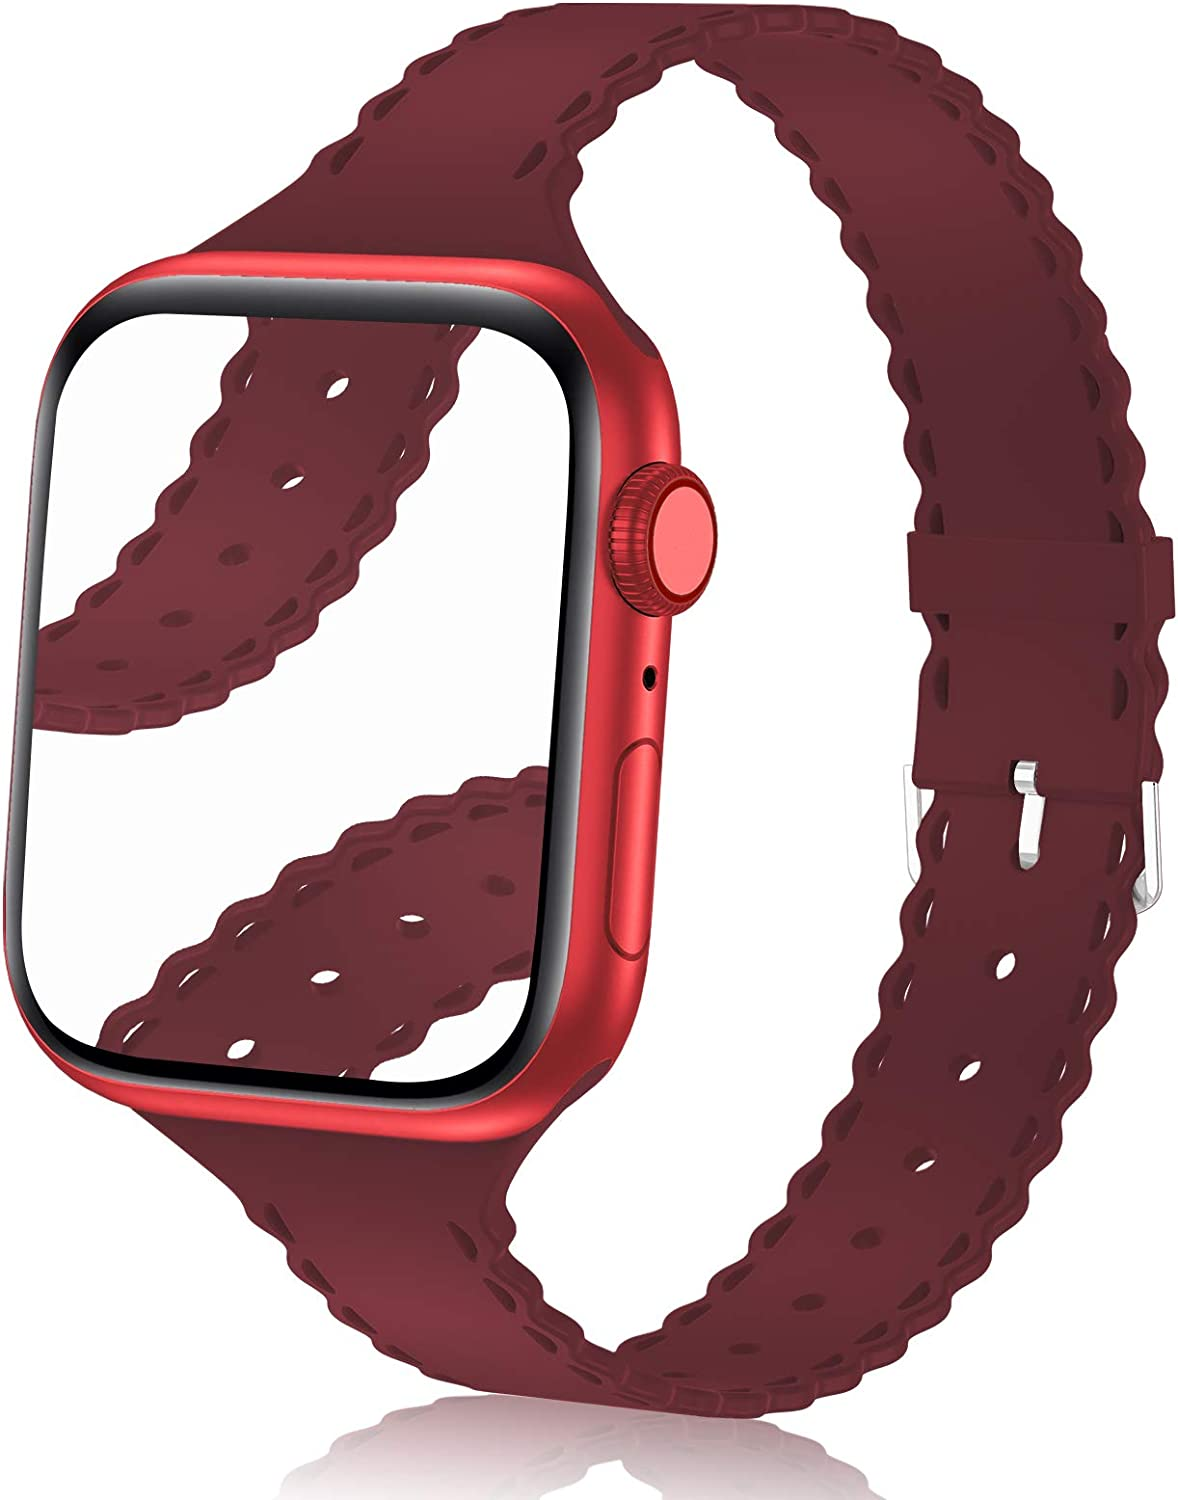 Bandiction Compatible with Apple Watch Bands 38mm 40mm Women Slim Thin iWatch Bands 38mm 40mm Soft Silicone Sport Band Narrow Watch Strap Compatible for Apple Watch SE Series 6 5 4 3 2 1, Burgundy